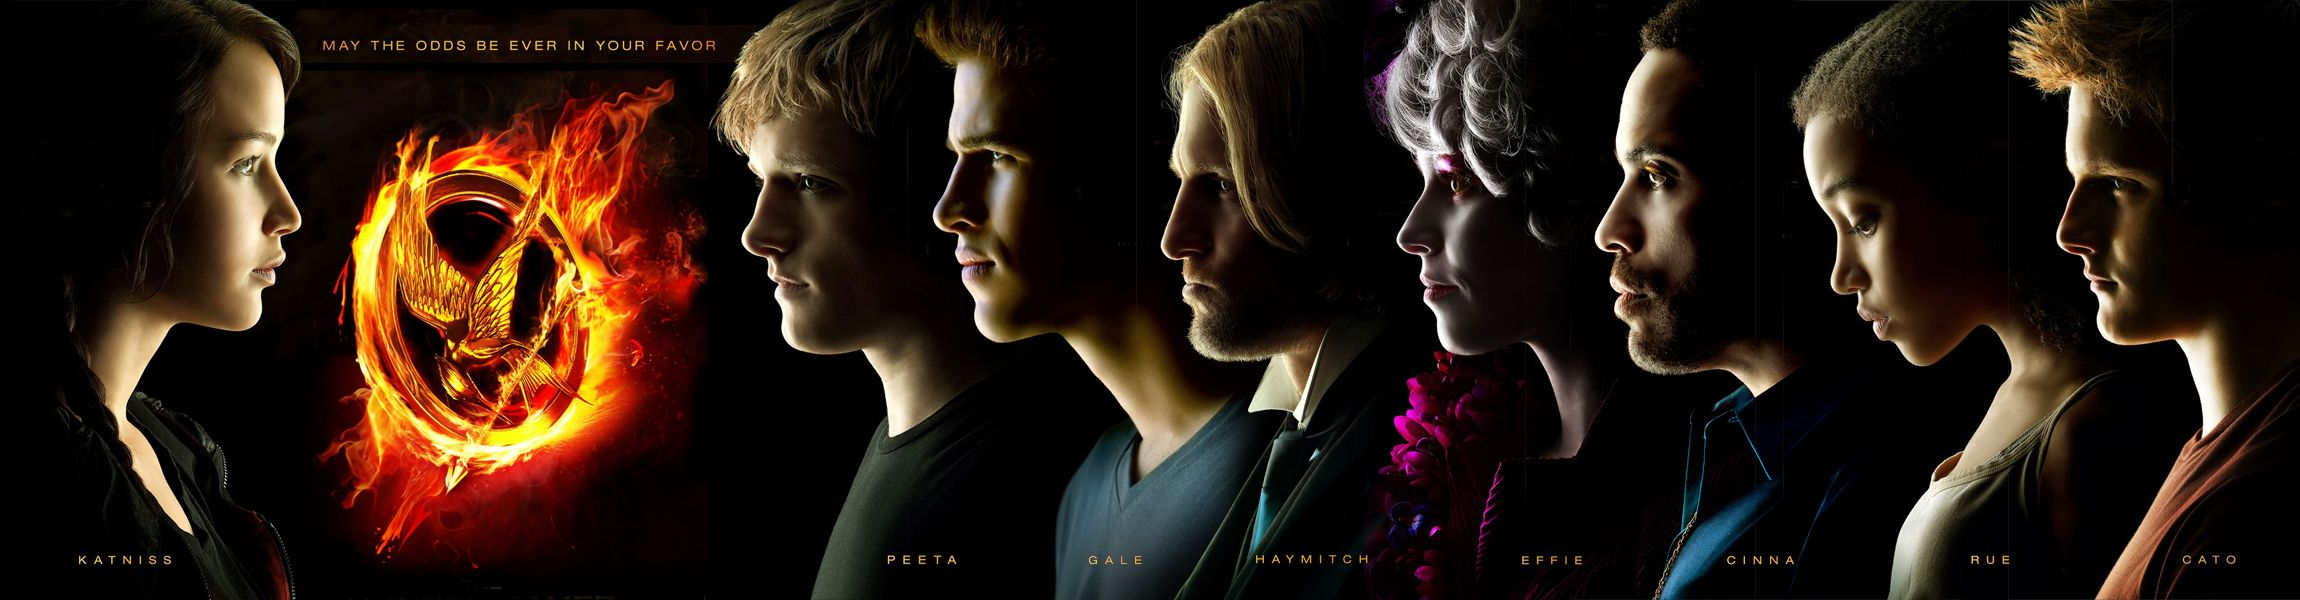 Pin By Becky Rivera On Hunger Games Hunger Games Poster Hunger Games Characters Hunger Games 2012